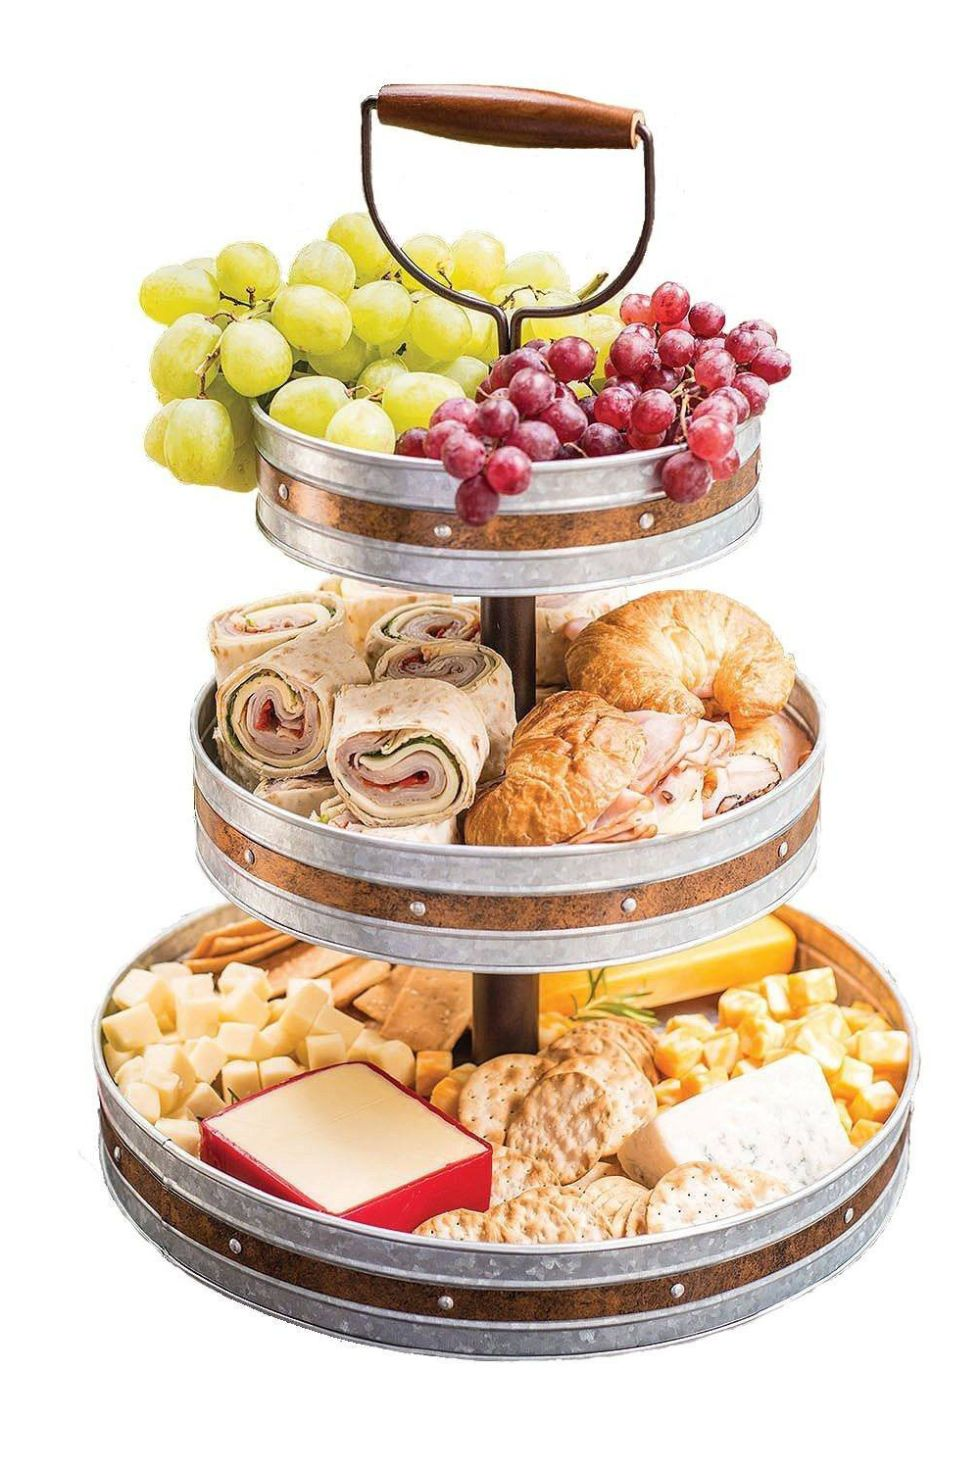 10 Outdoor Party Ideas For The Ultimate Summer Event Party Trays Tiered Serving Stand Food Display